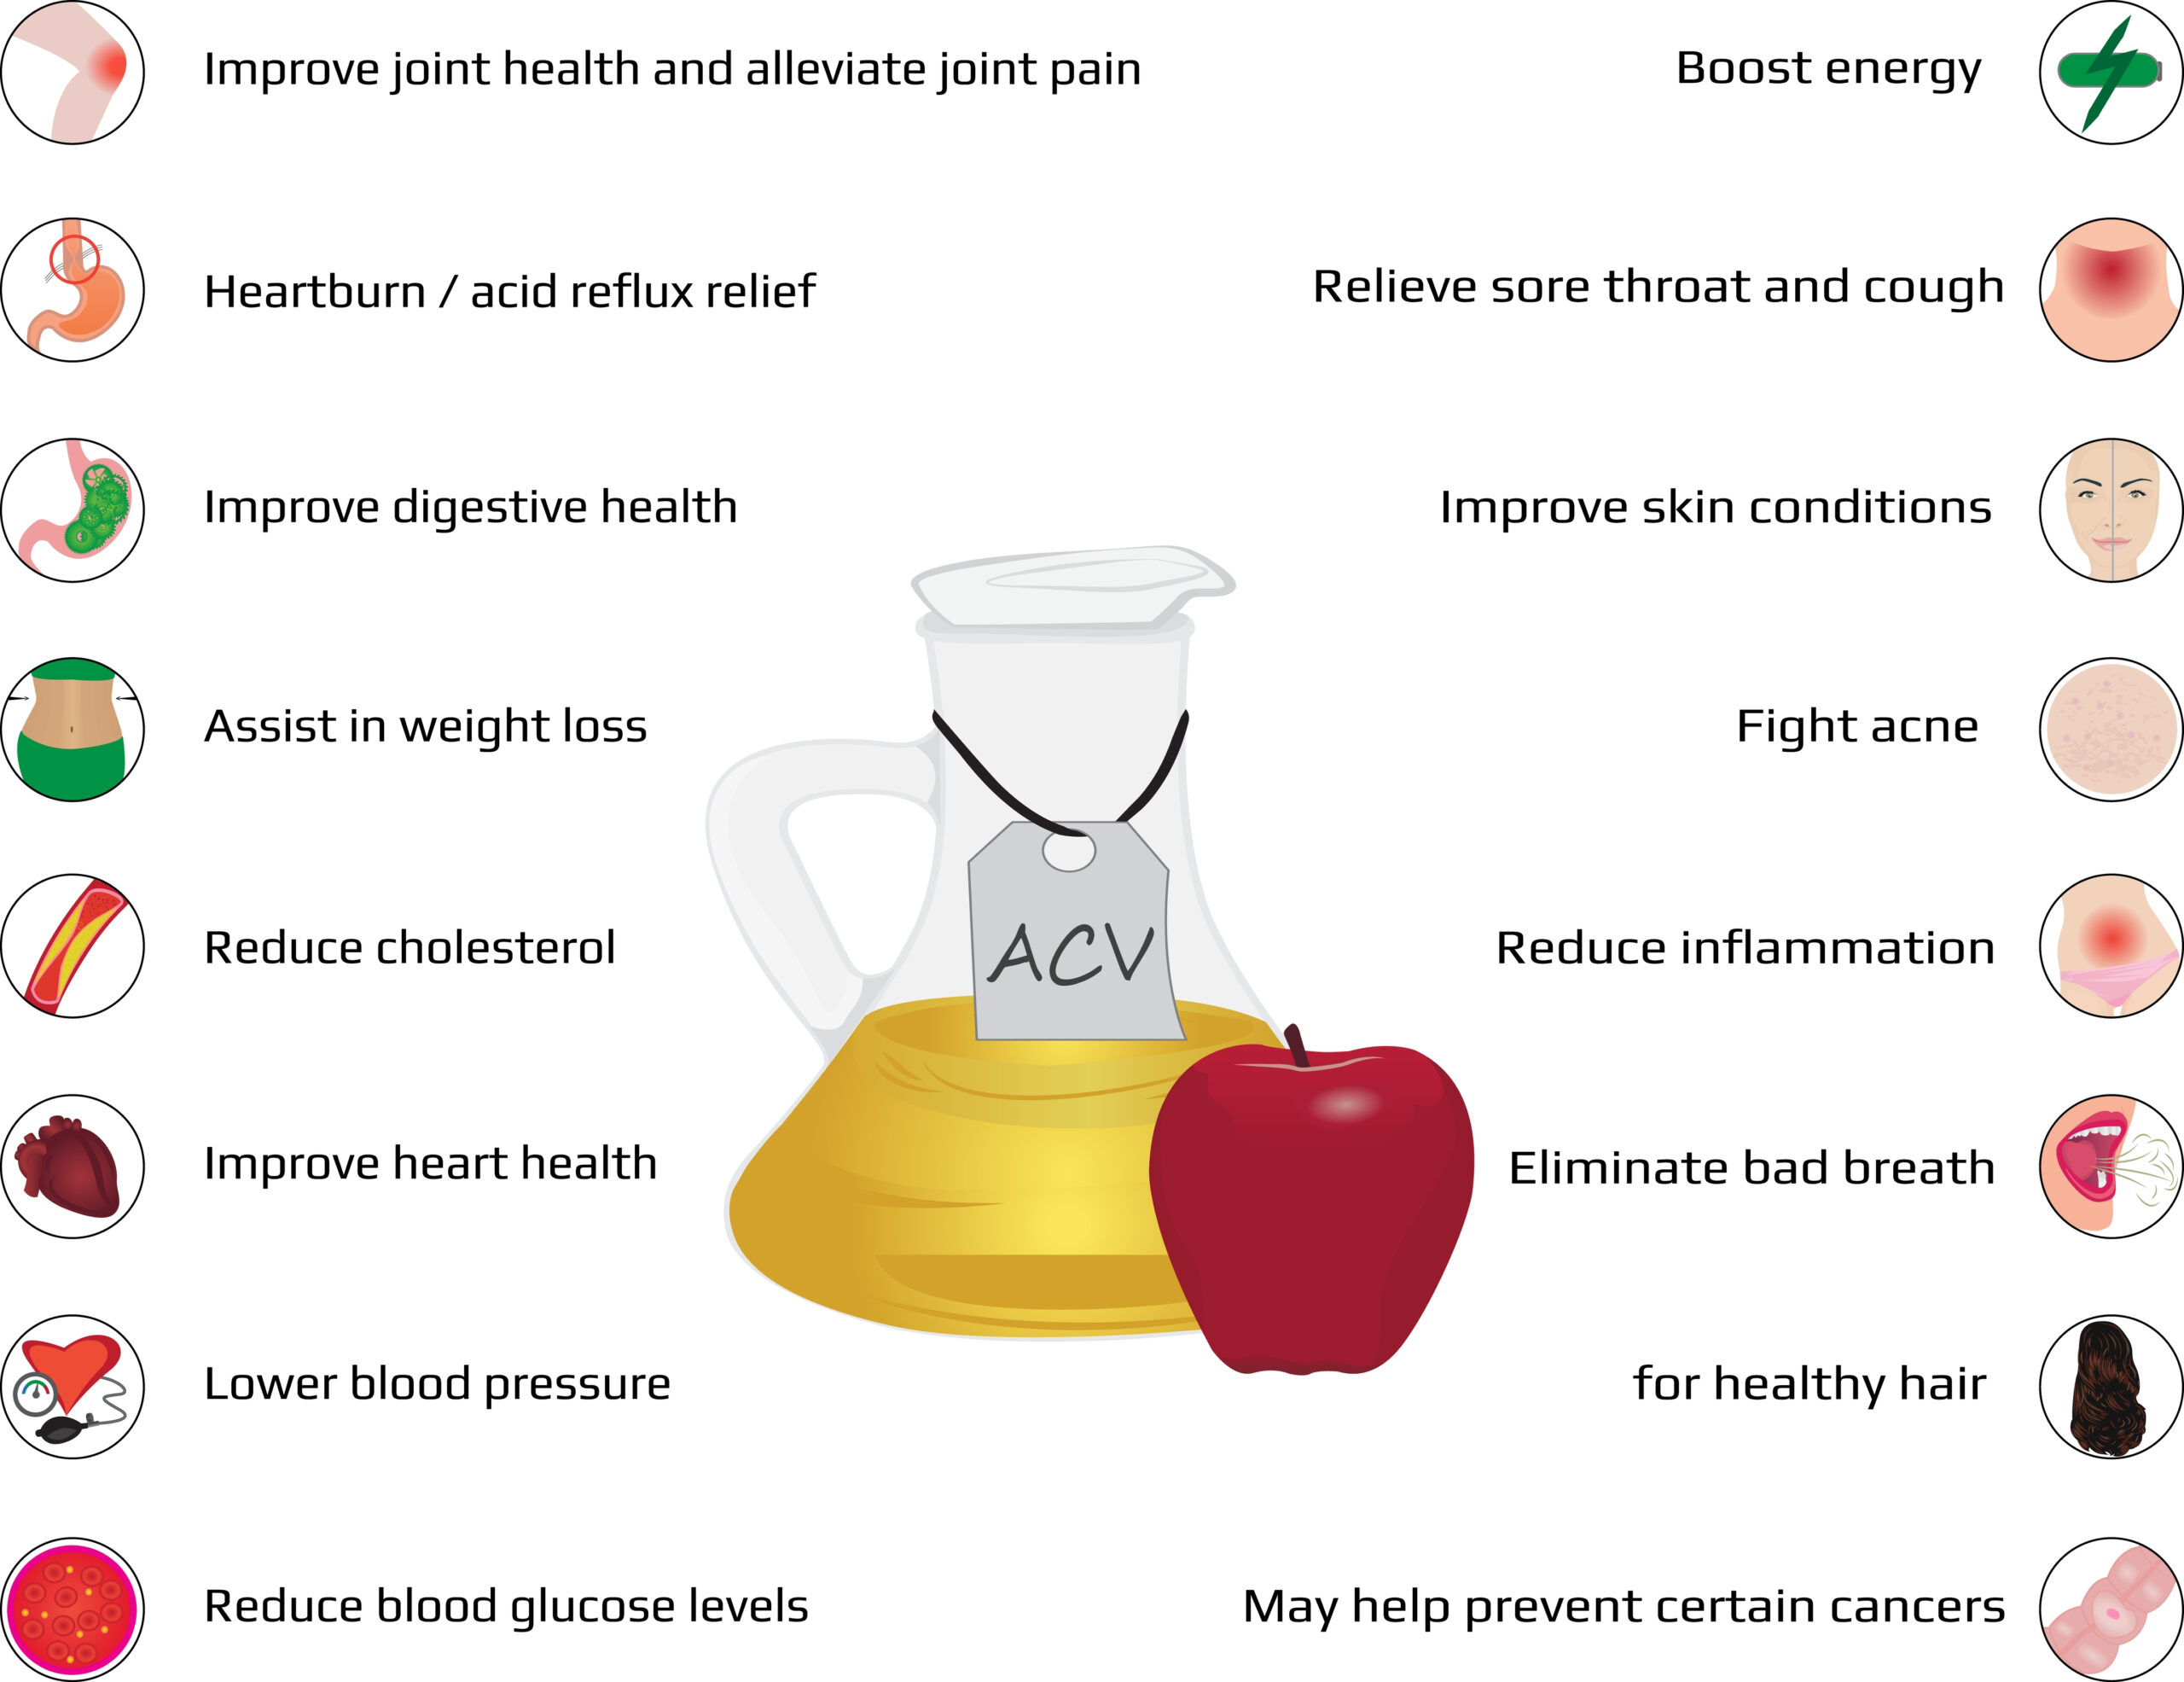 There are many potential health benefits from apple cider vinegar.